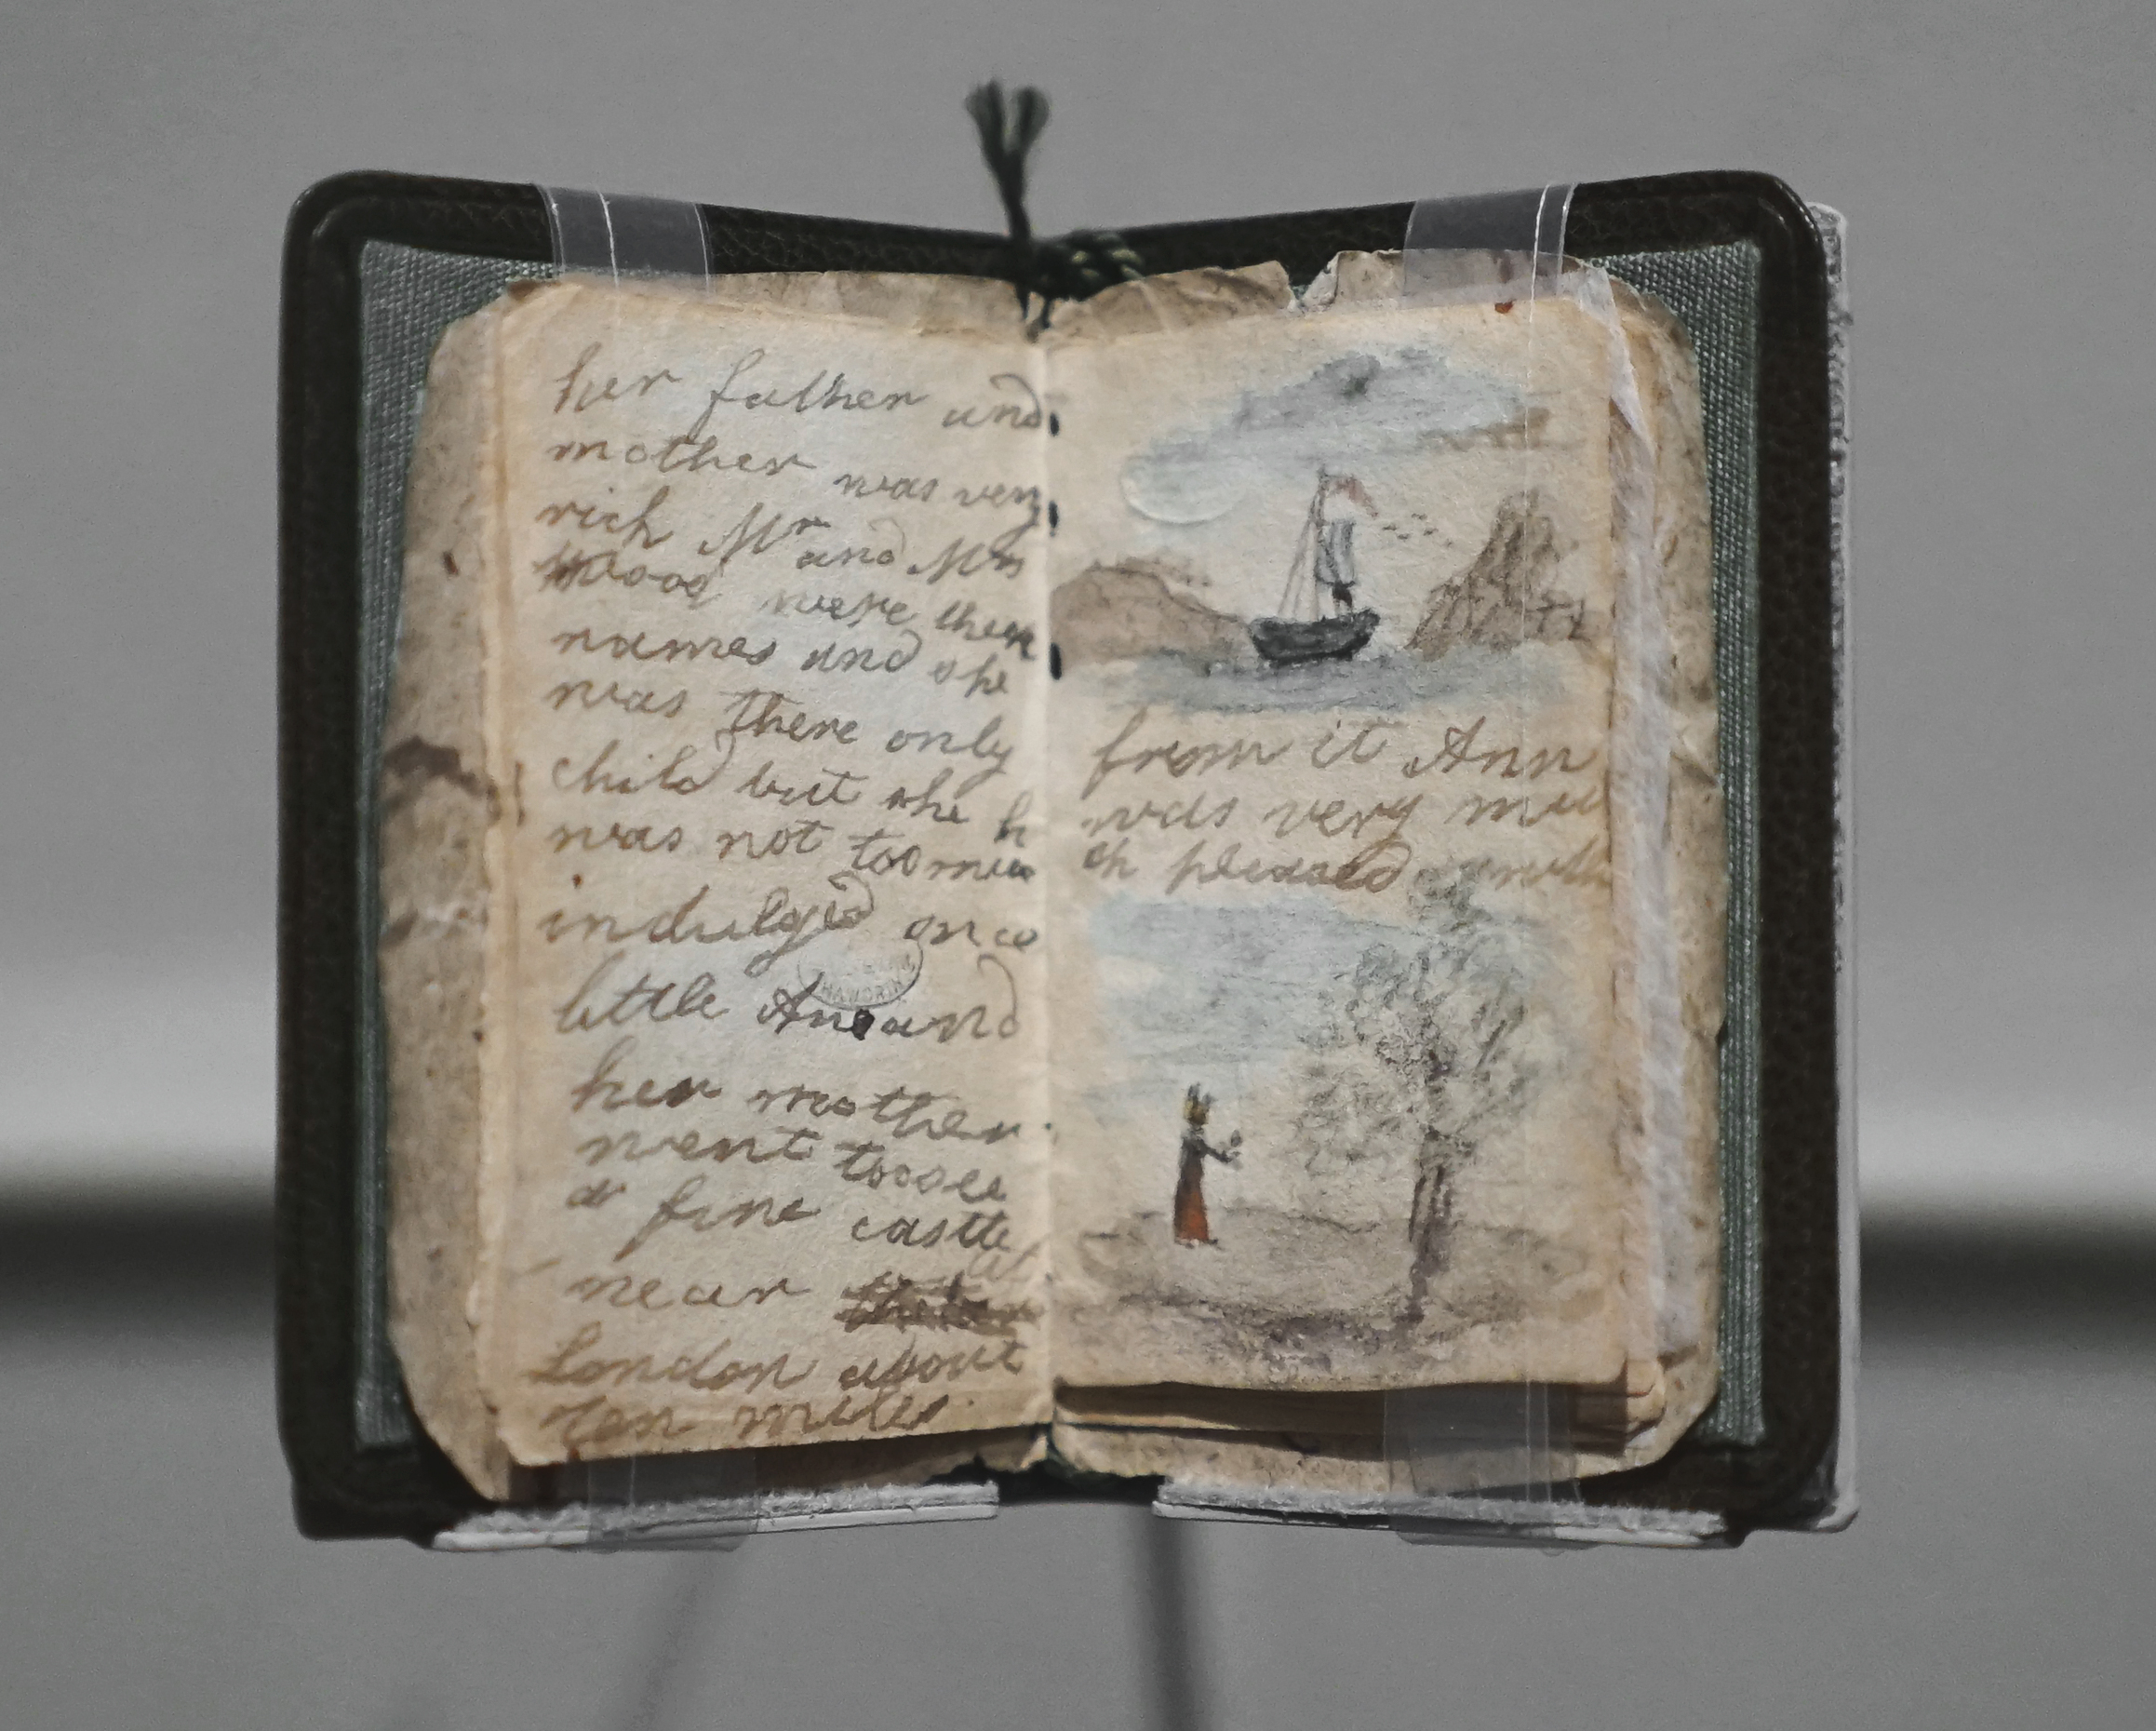 "This is the earliest surviving manuscript by Charlotte Brontë, a miniature handmade book of sixteen pages bound in a scrap of decorative wallpaper and illustrated with tiny watercolors circa 1858. (The leather folder was added later.) Charlotte was about twelve when she wrote the story for her sister Anne, who was four years younger. It describes a journey that begins with the child's visit to a splendid castle near London and ends, poignantly enough, as tends to her ailing mother ""with so much care."""